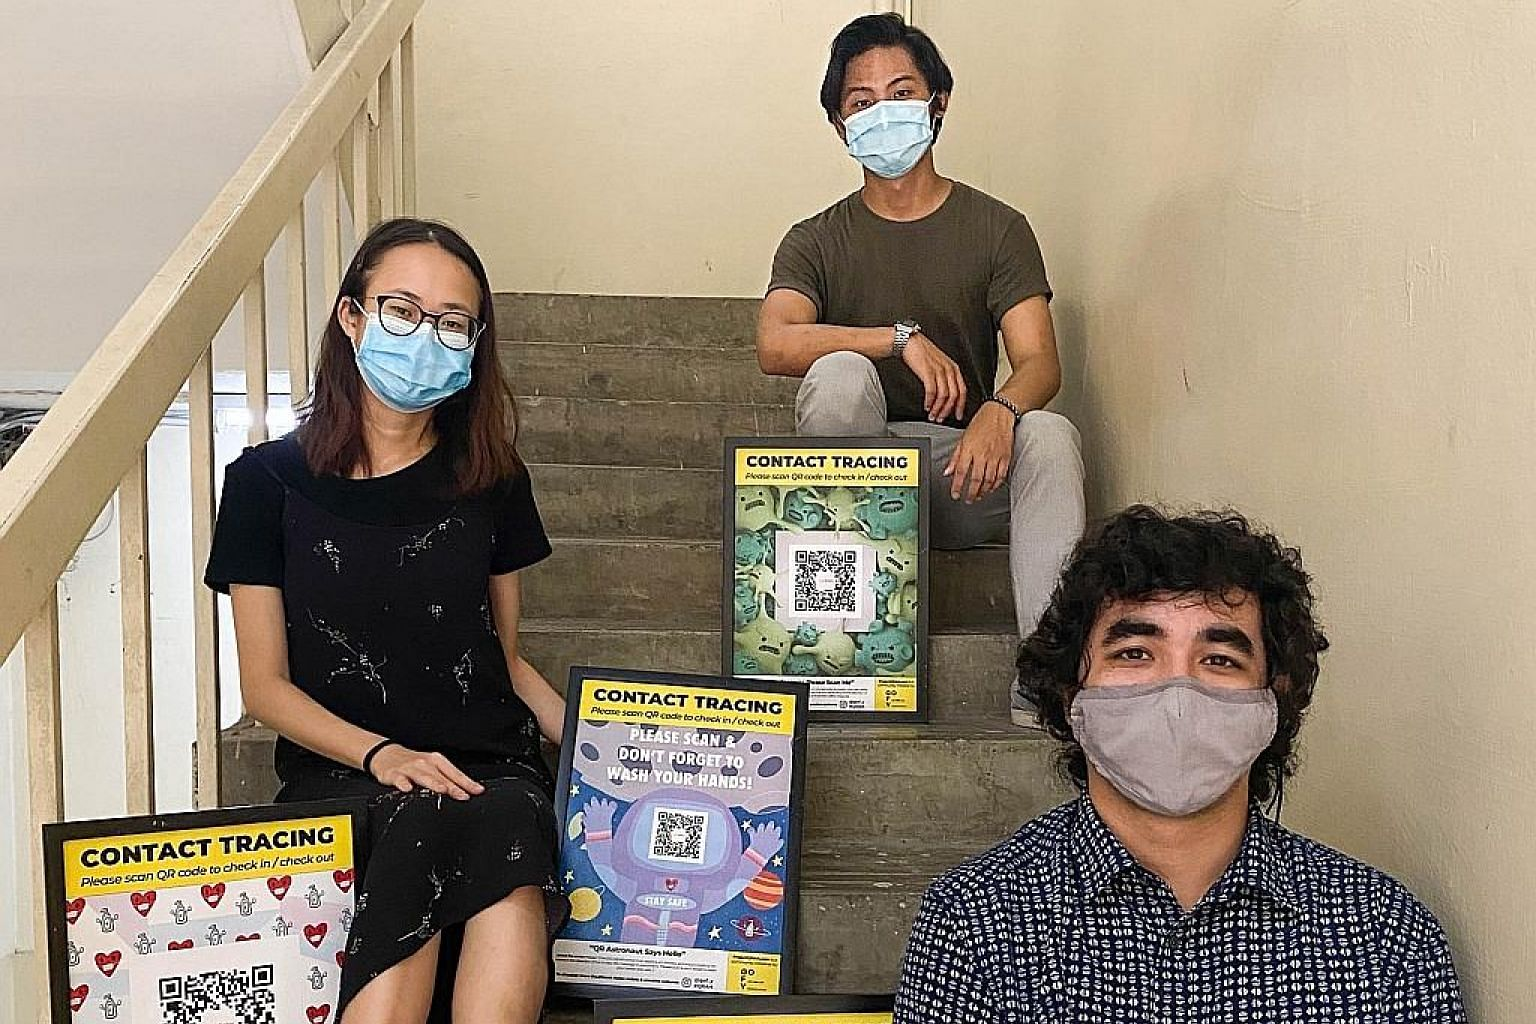 Singaporeans John Henry (front), 32, Megan Chia, 20, and Zul Eddy Zain, 24, are among artists who have designed SafeEntry posters that can be downloaded for free under Project #QRArt. Launched by home-grown creative collaborative GOFY, the project ha